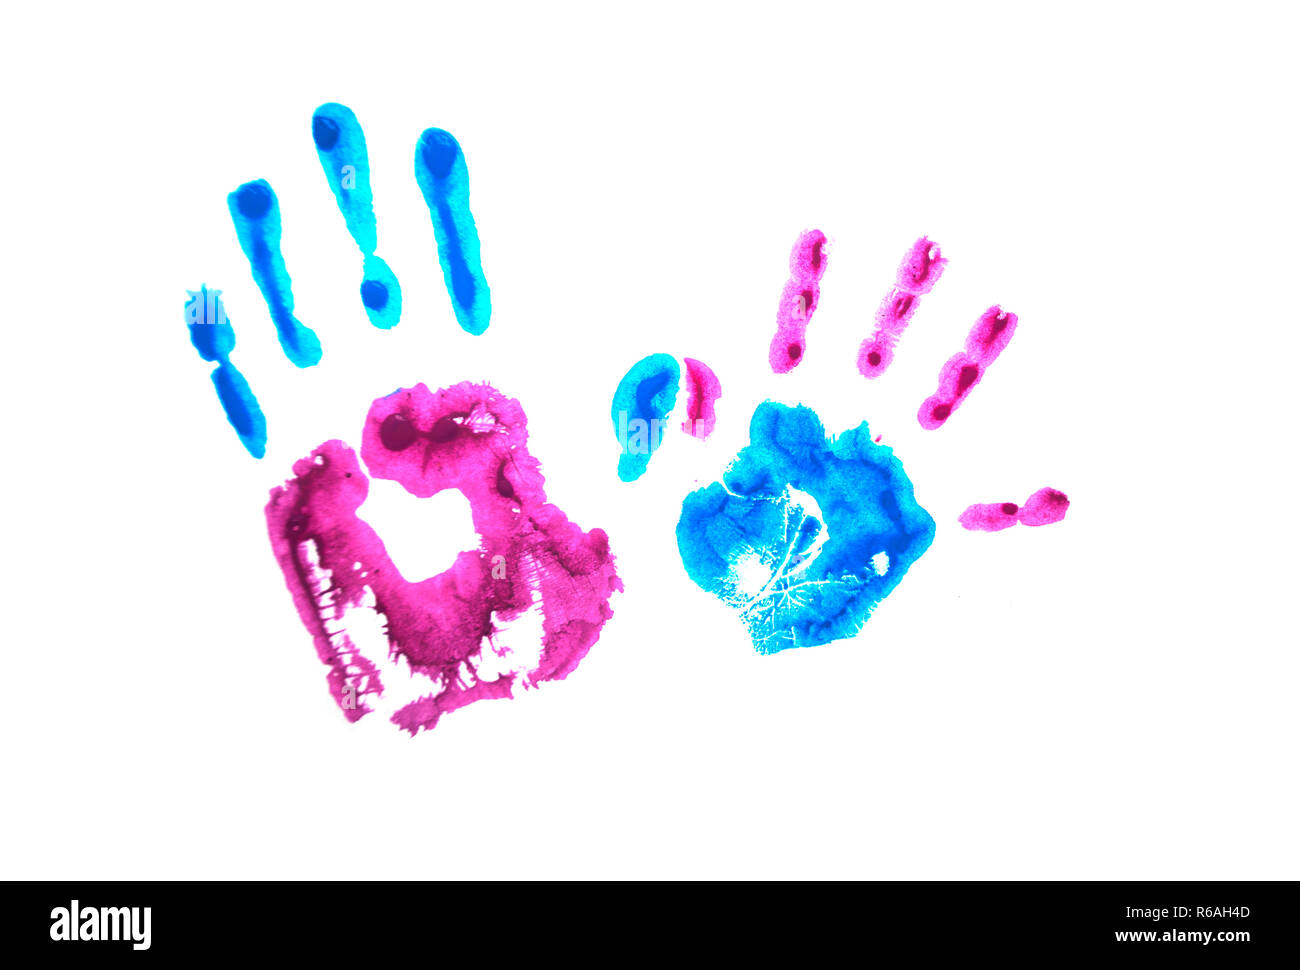 Colorful child's handprints isolated on white background. World autism awareness day concept. - Stock Image